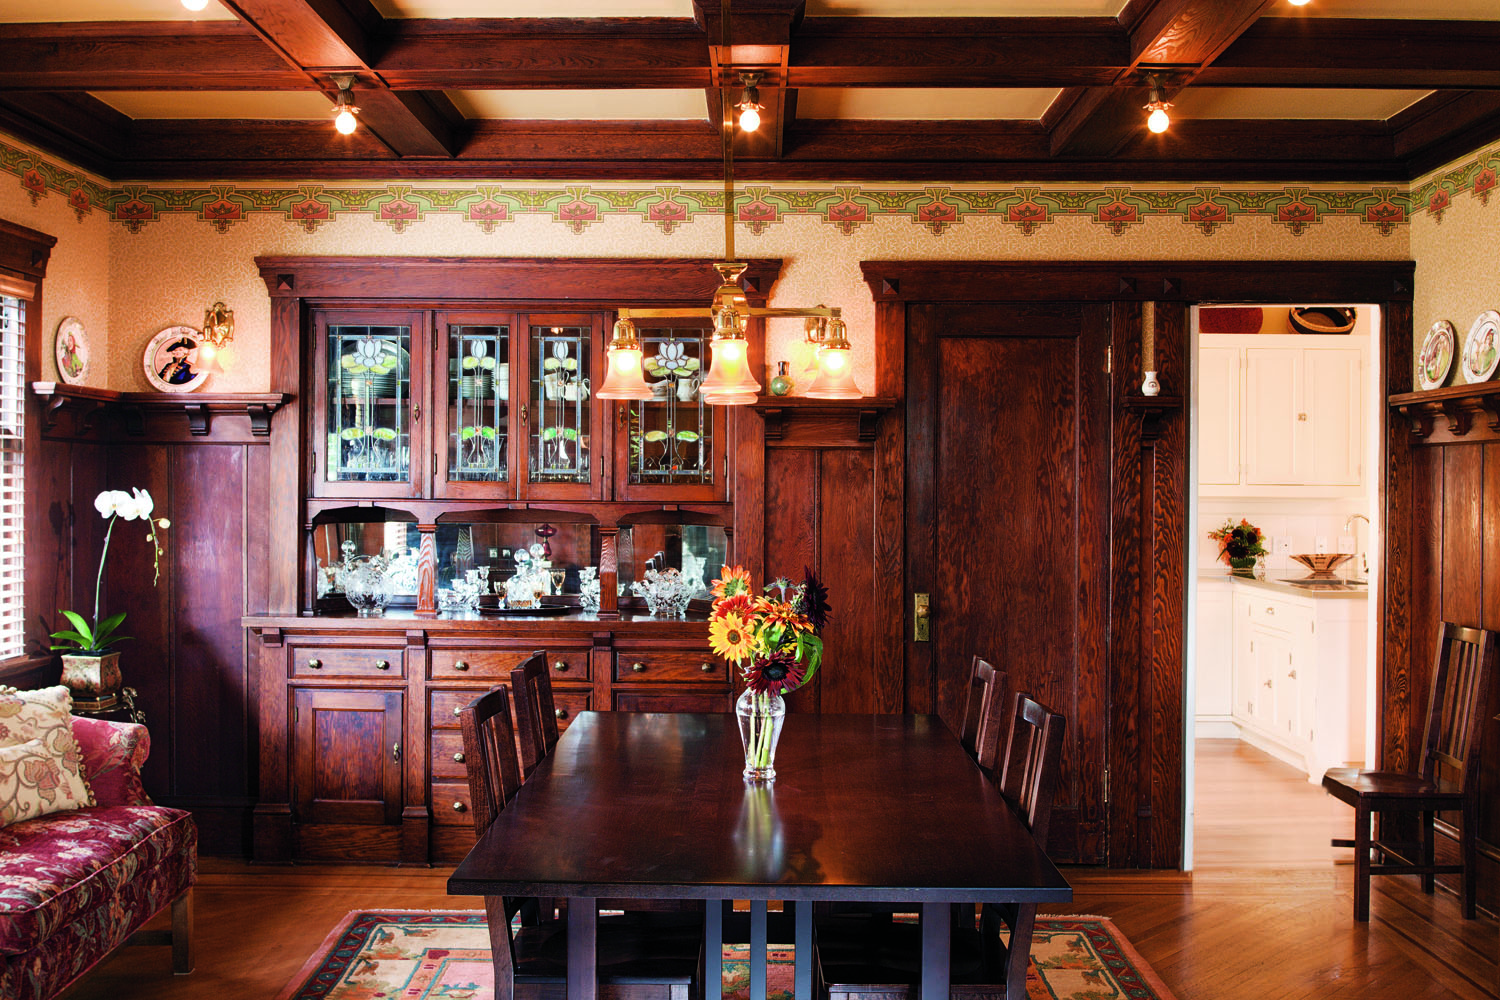 The 1911 house was built with a wealth of detail: Douglas fir woodwork, stained and leaded glass, picture and plate rails. Even the ceilings— box-beamed in the dining room, coved in the living room—illustrate the period's quality.